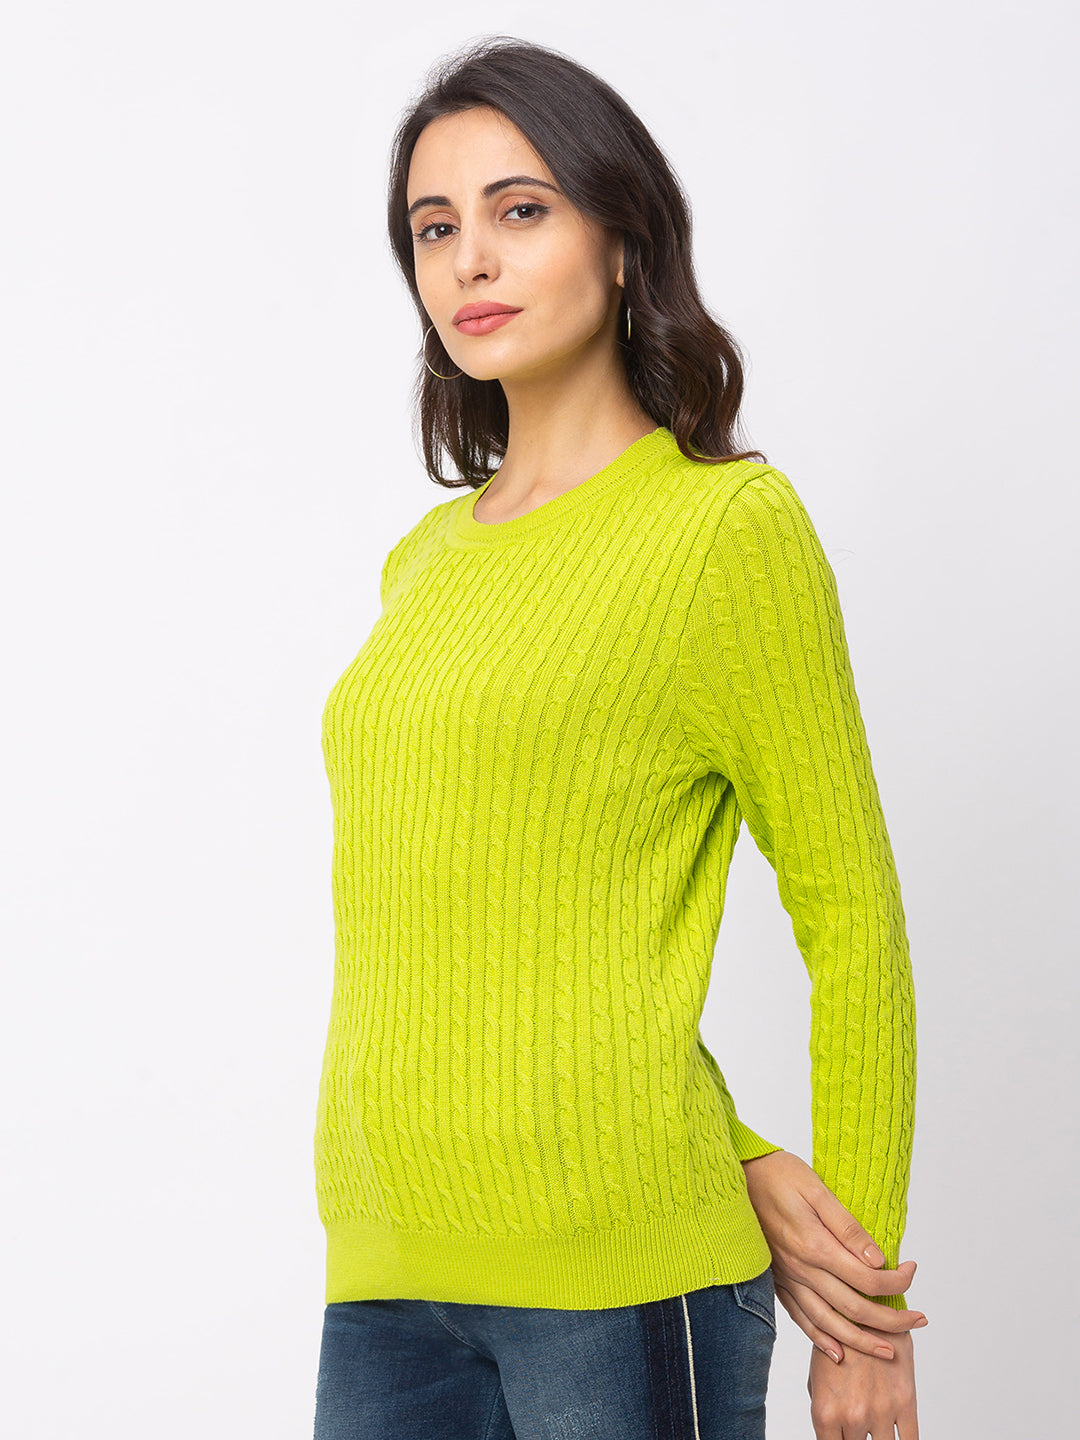 Globus Lime Textured Sweater-4